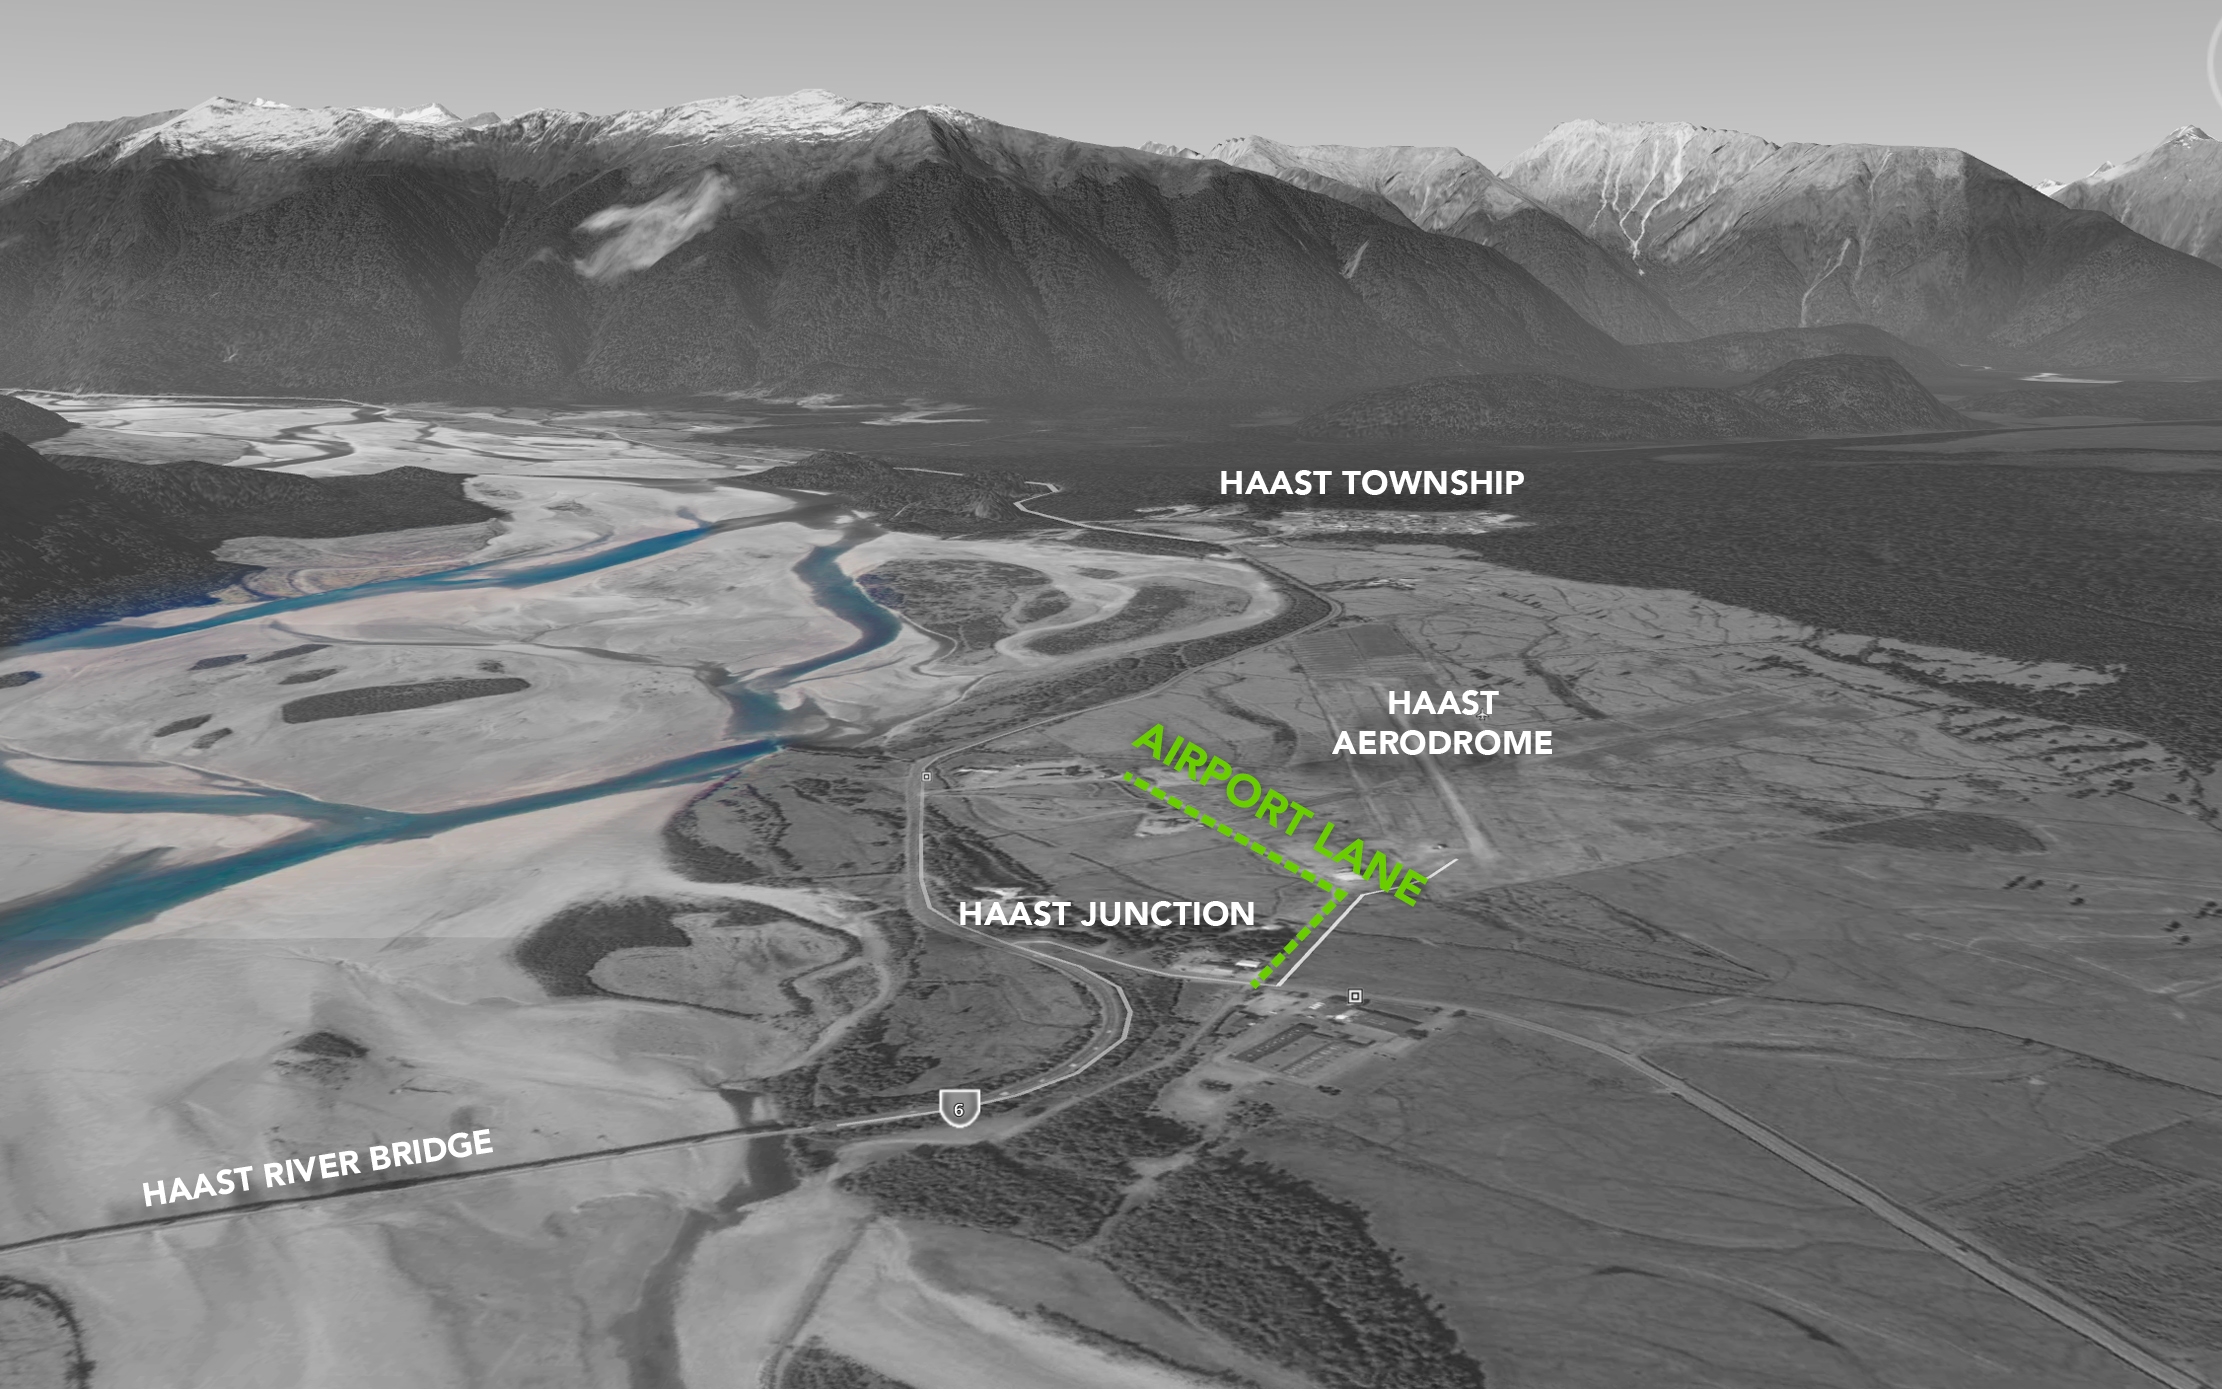 Map of Airport Lane, Haast Junction, HAAST